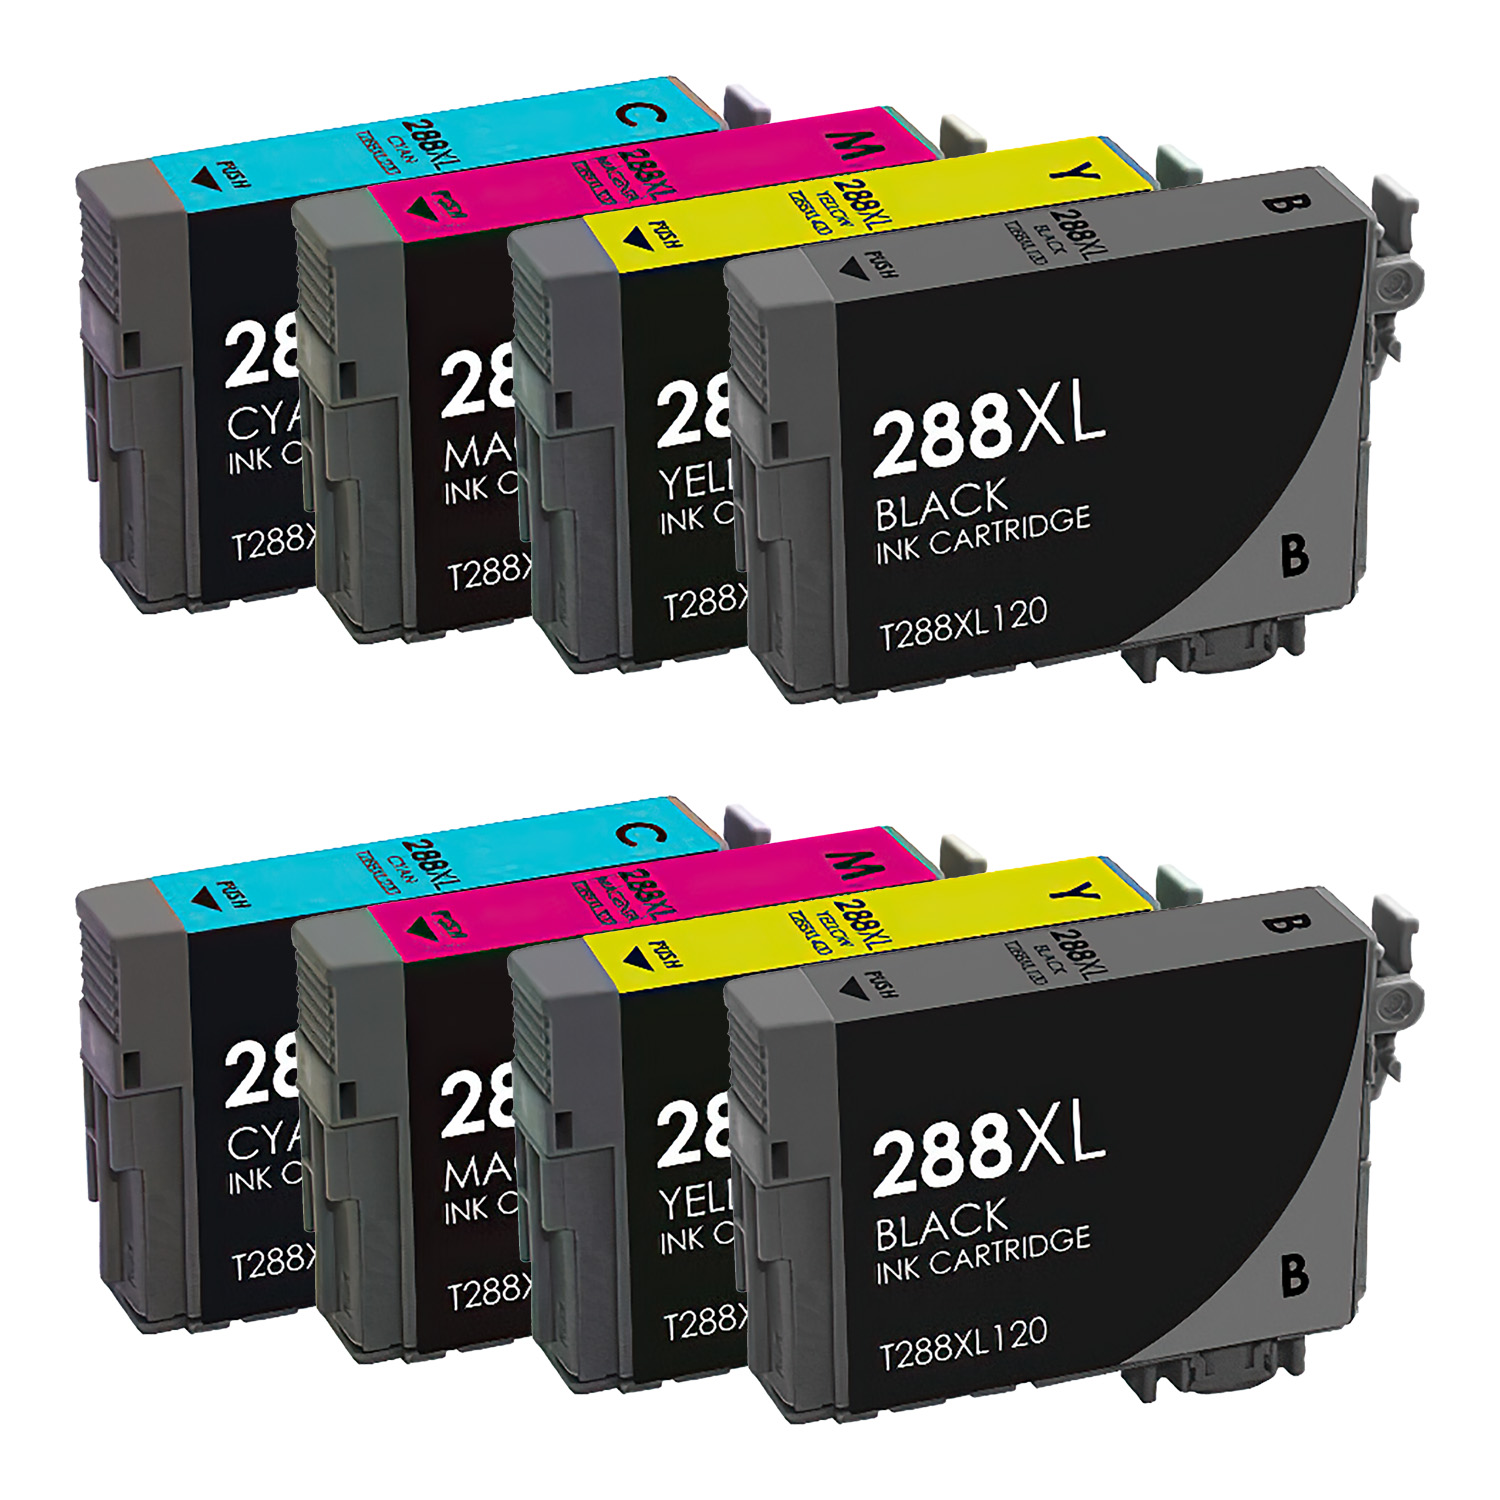 Remanufactured Epson 288XL Inkjet High Capacity Pack - 8 Cartridges